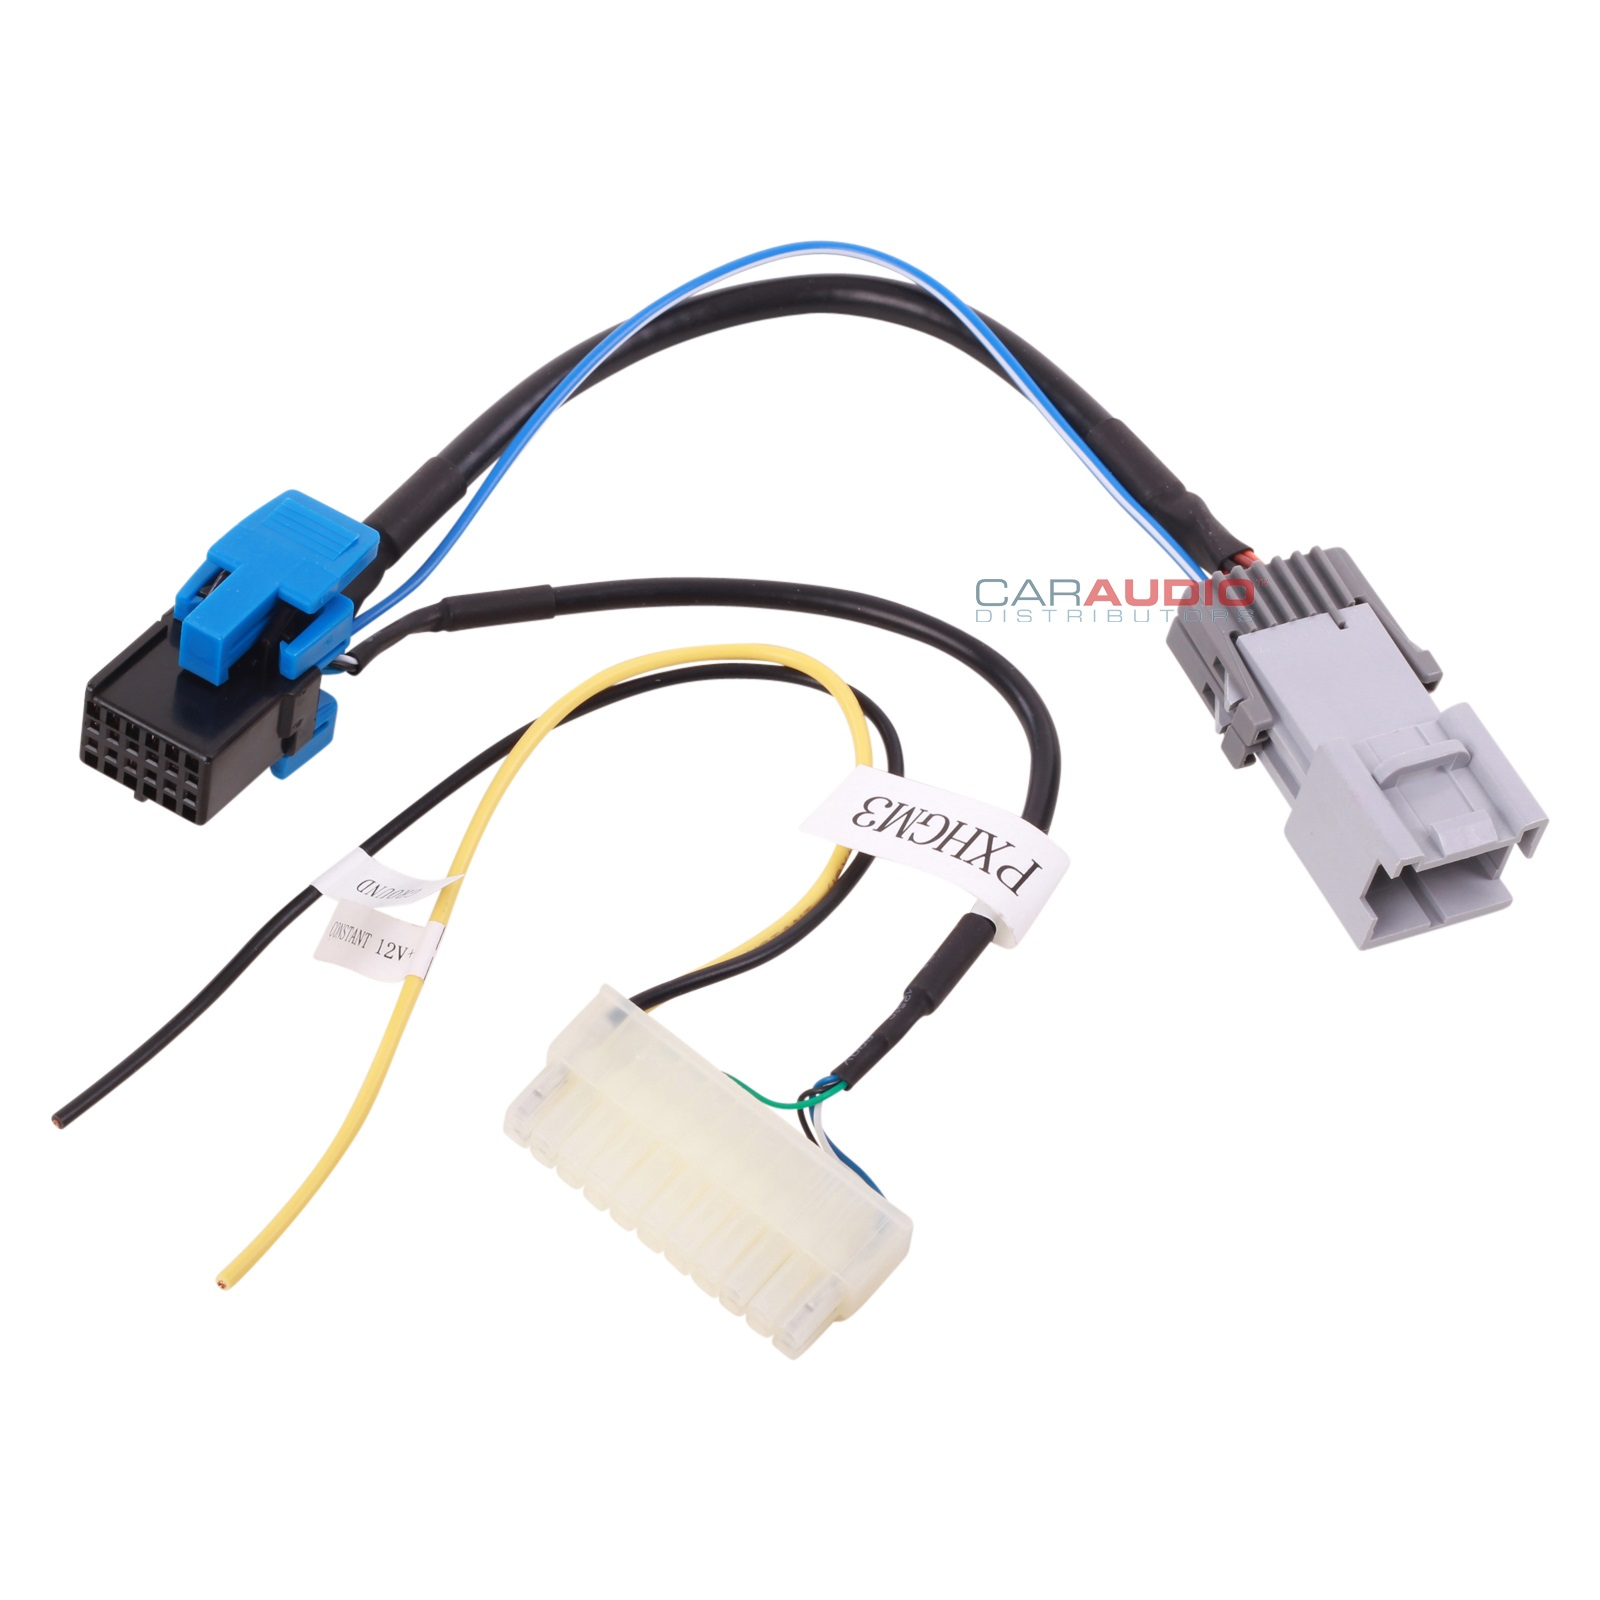 12 pin wiring harness  12  free engine image for user simple user manual simple user manual for web application